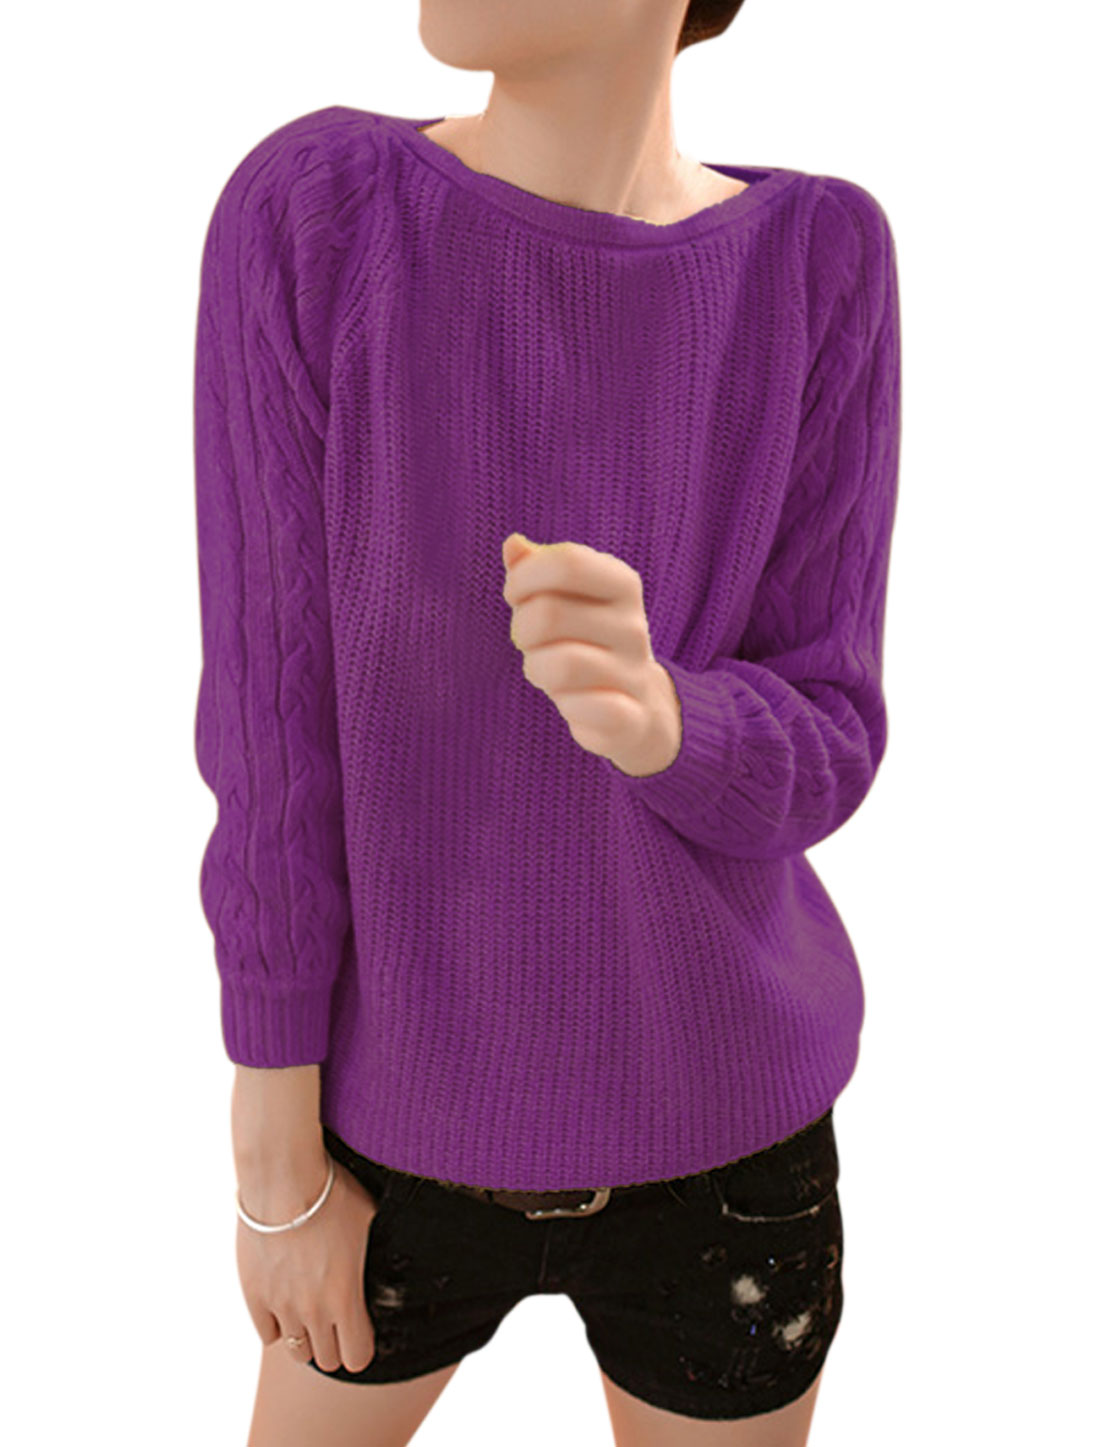 Women Round Neck Slipover Leisure Cable Knit Sweater Purple S